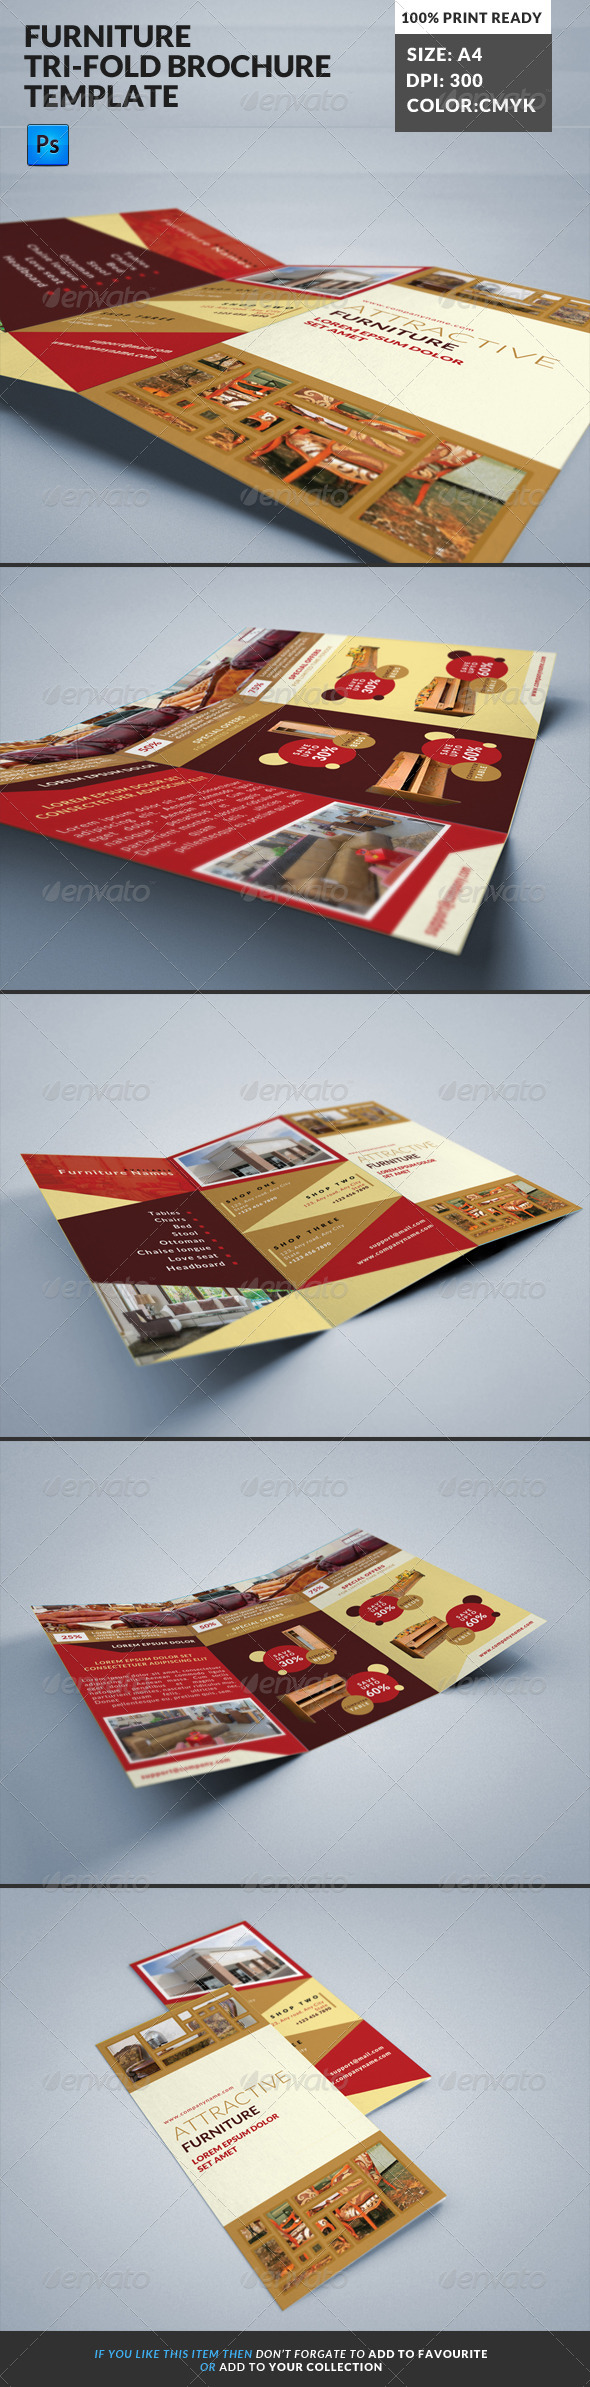 GraphicRiver Furniture Store Tri-Fold Brochure Template 8145889